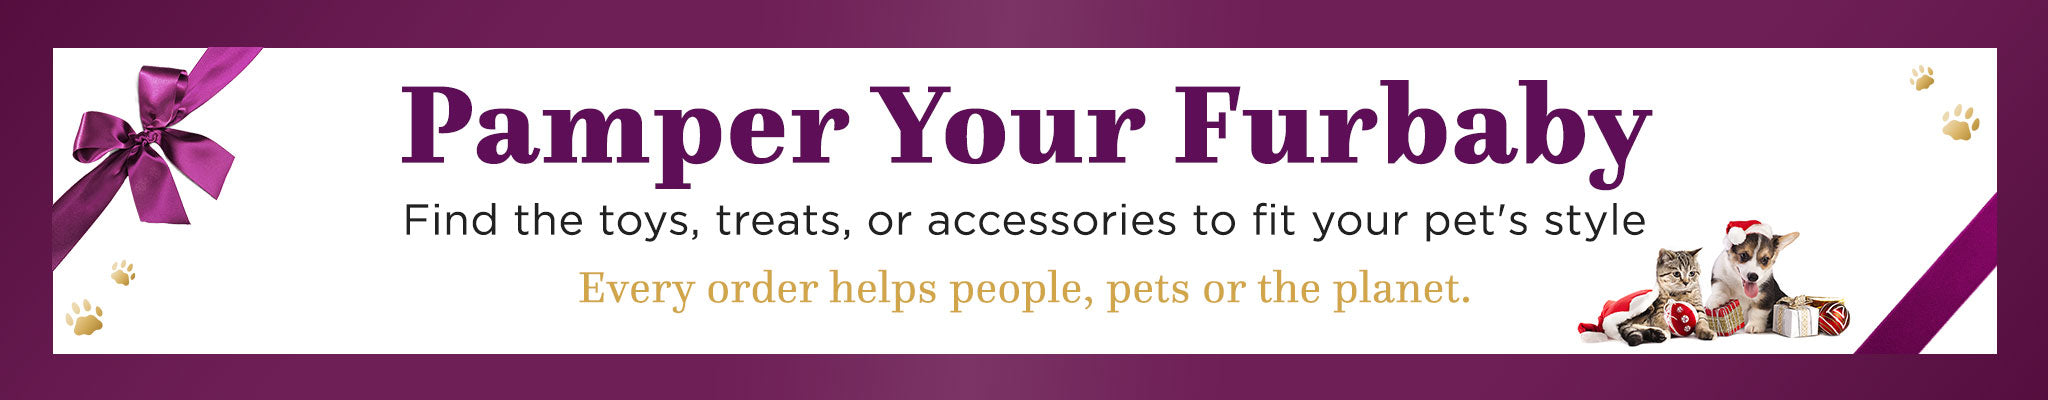 Pamper Your Furbaby | Find the toys, treats, or accessories to fit your pet's style | Every order helps people, pets or the planet.